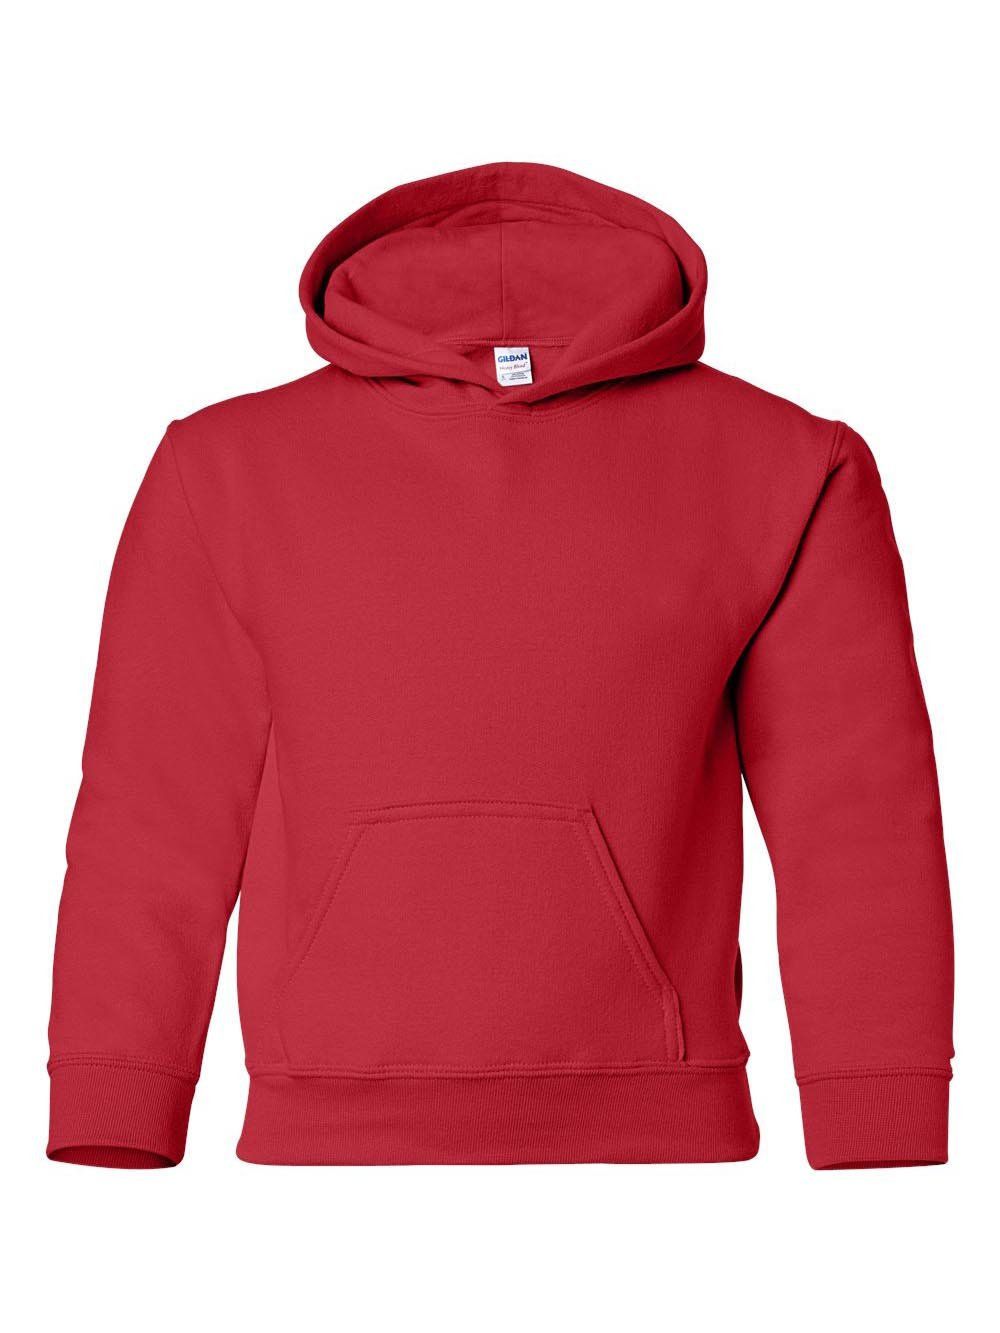 Gildan - Heavy Blend Youth Hooded Sweatshirt - 18500B by Gildan